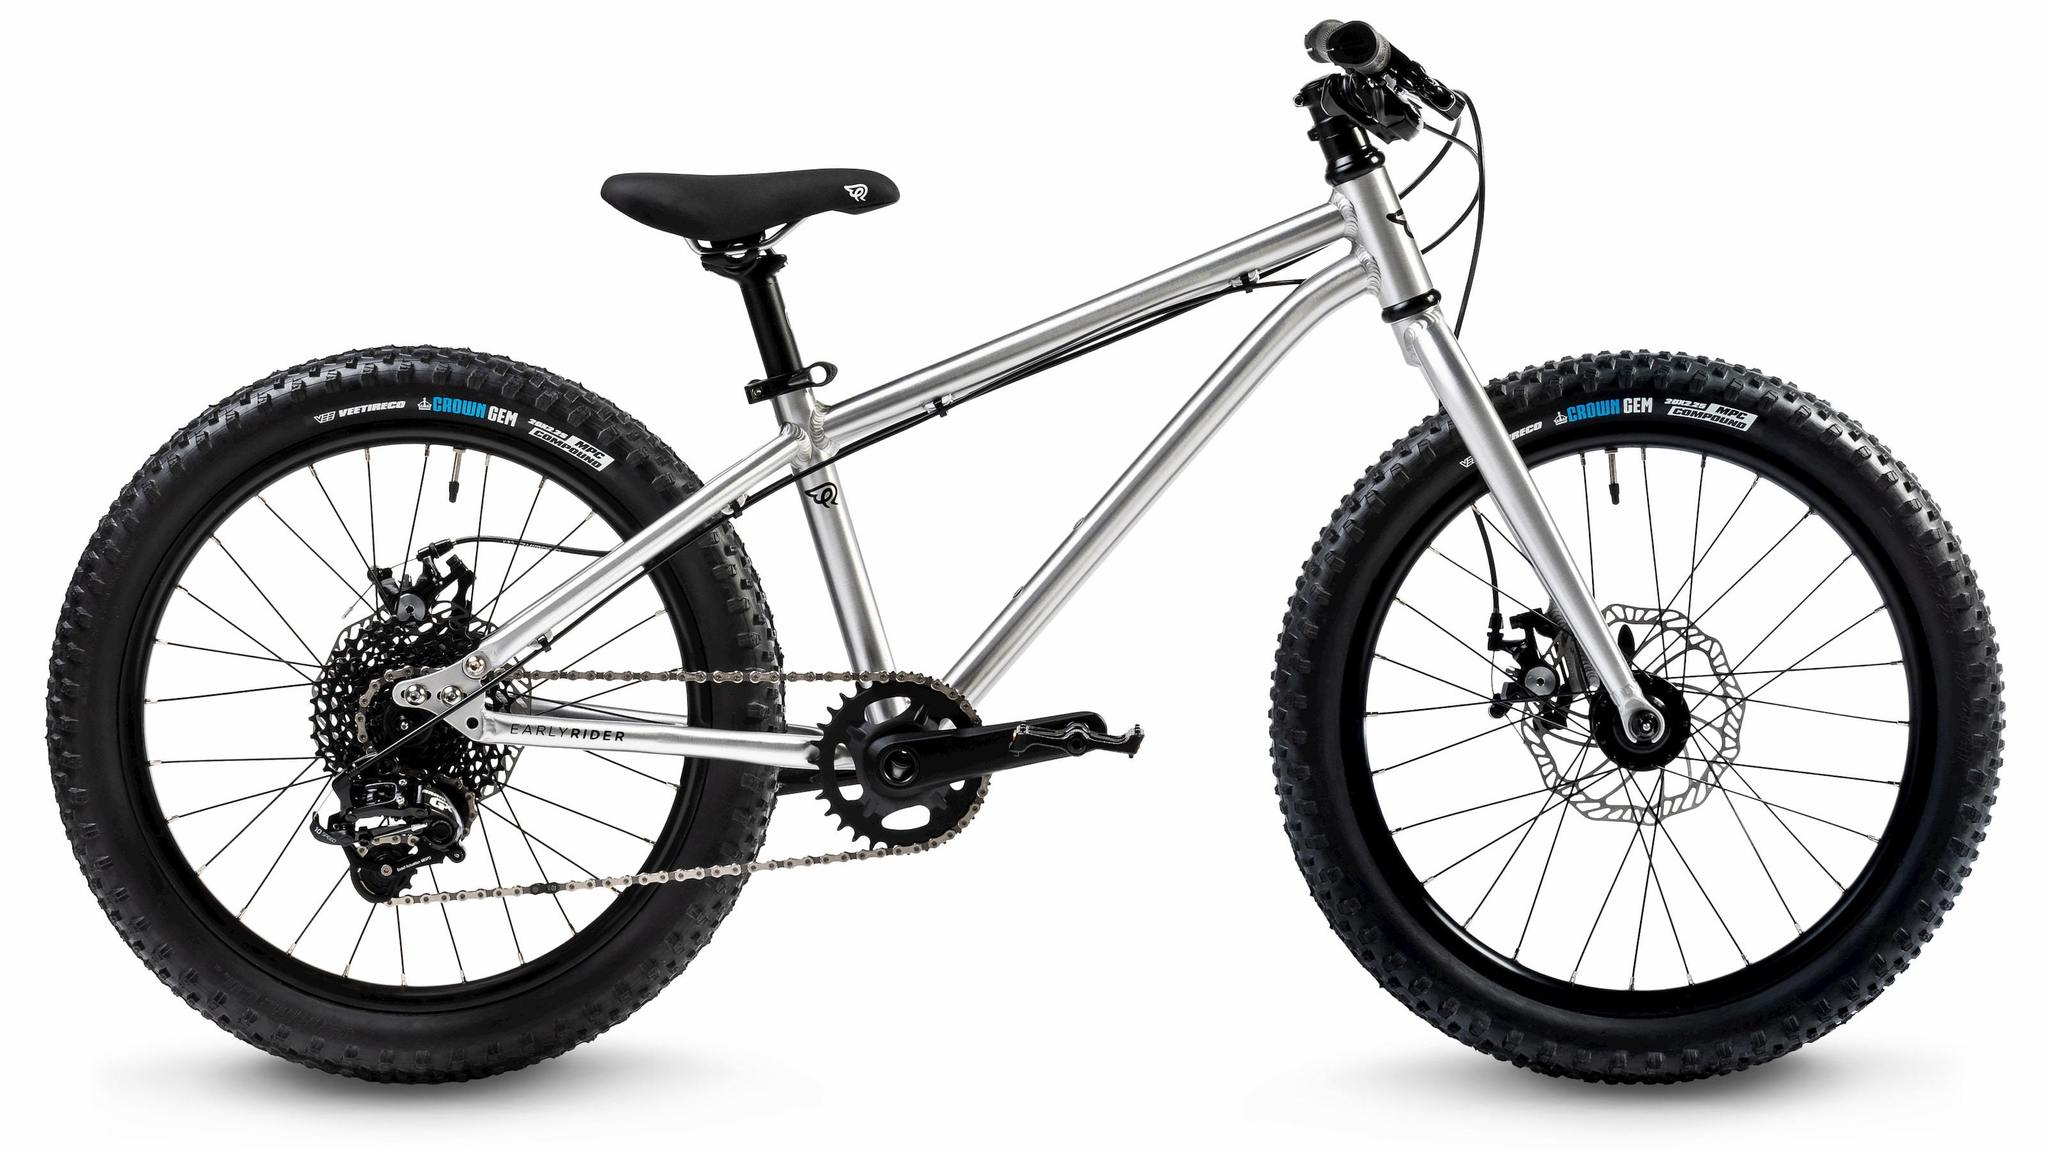 "dětské kolo Early Rider Seeker Adventure 20"" 2020 brushed aluminum"